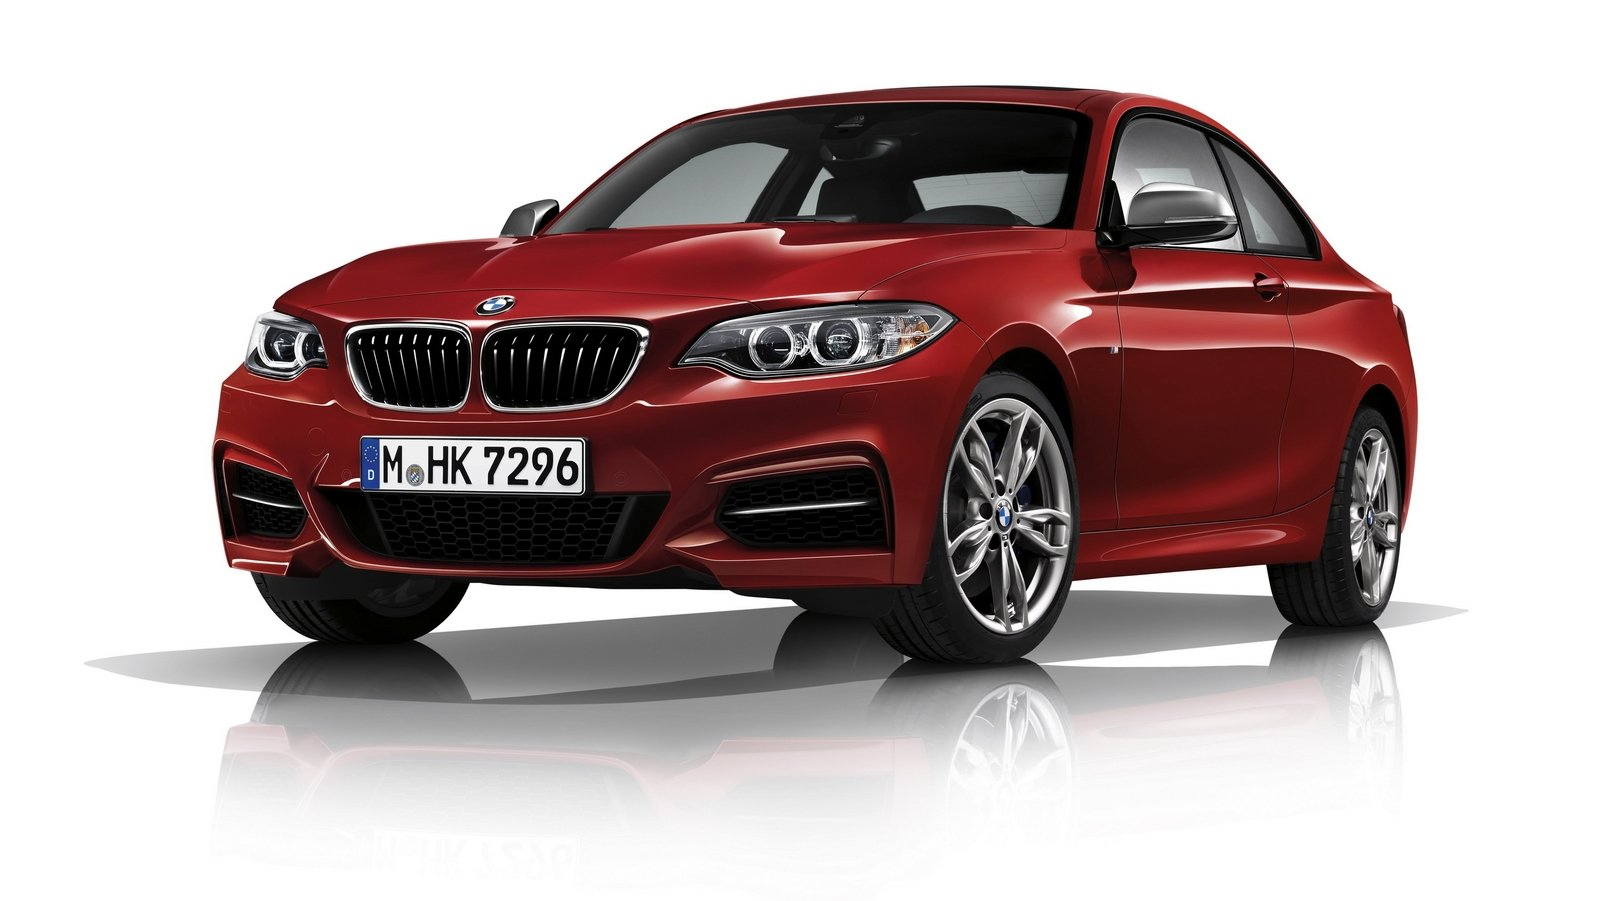 2017 bmw m240i 2_1600x0w 2017 bmw m240i review top speed  at crackthecode.co